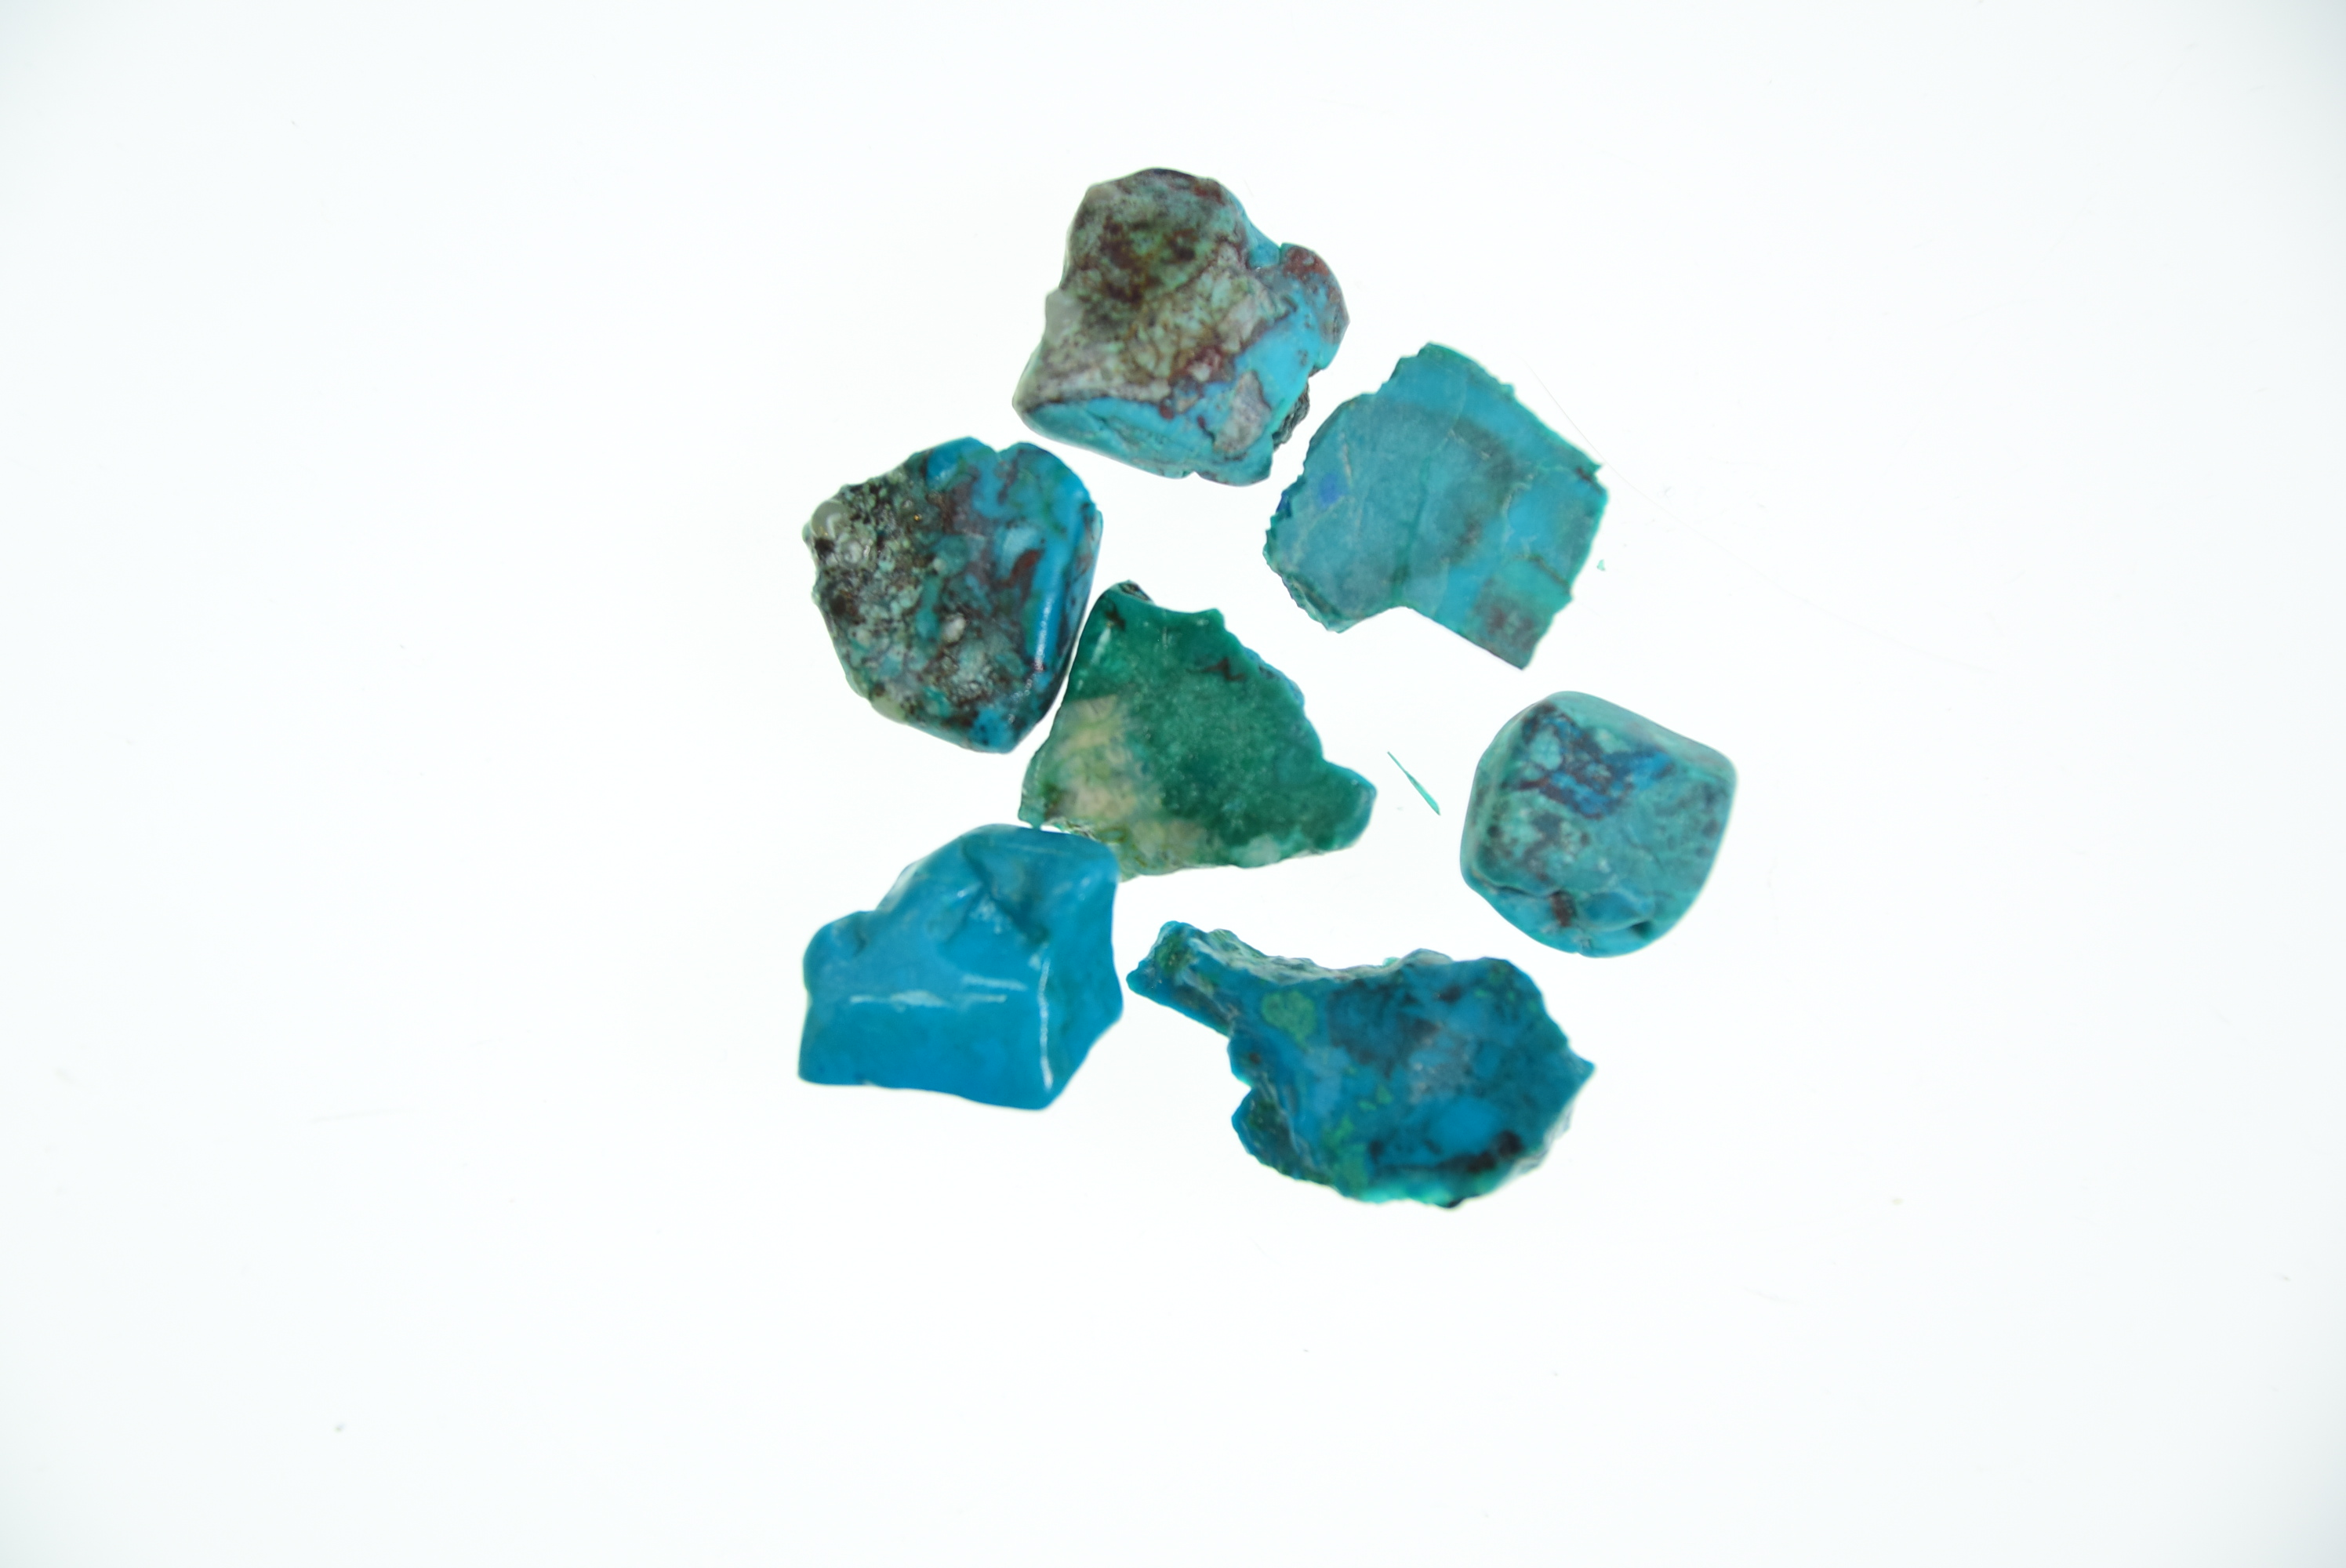 #4655 Chrysocolla (7 pieces - tumbled nuggetts)